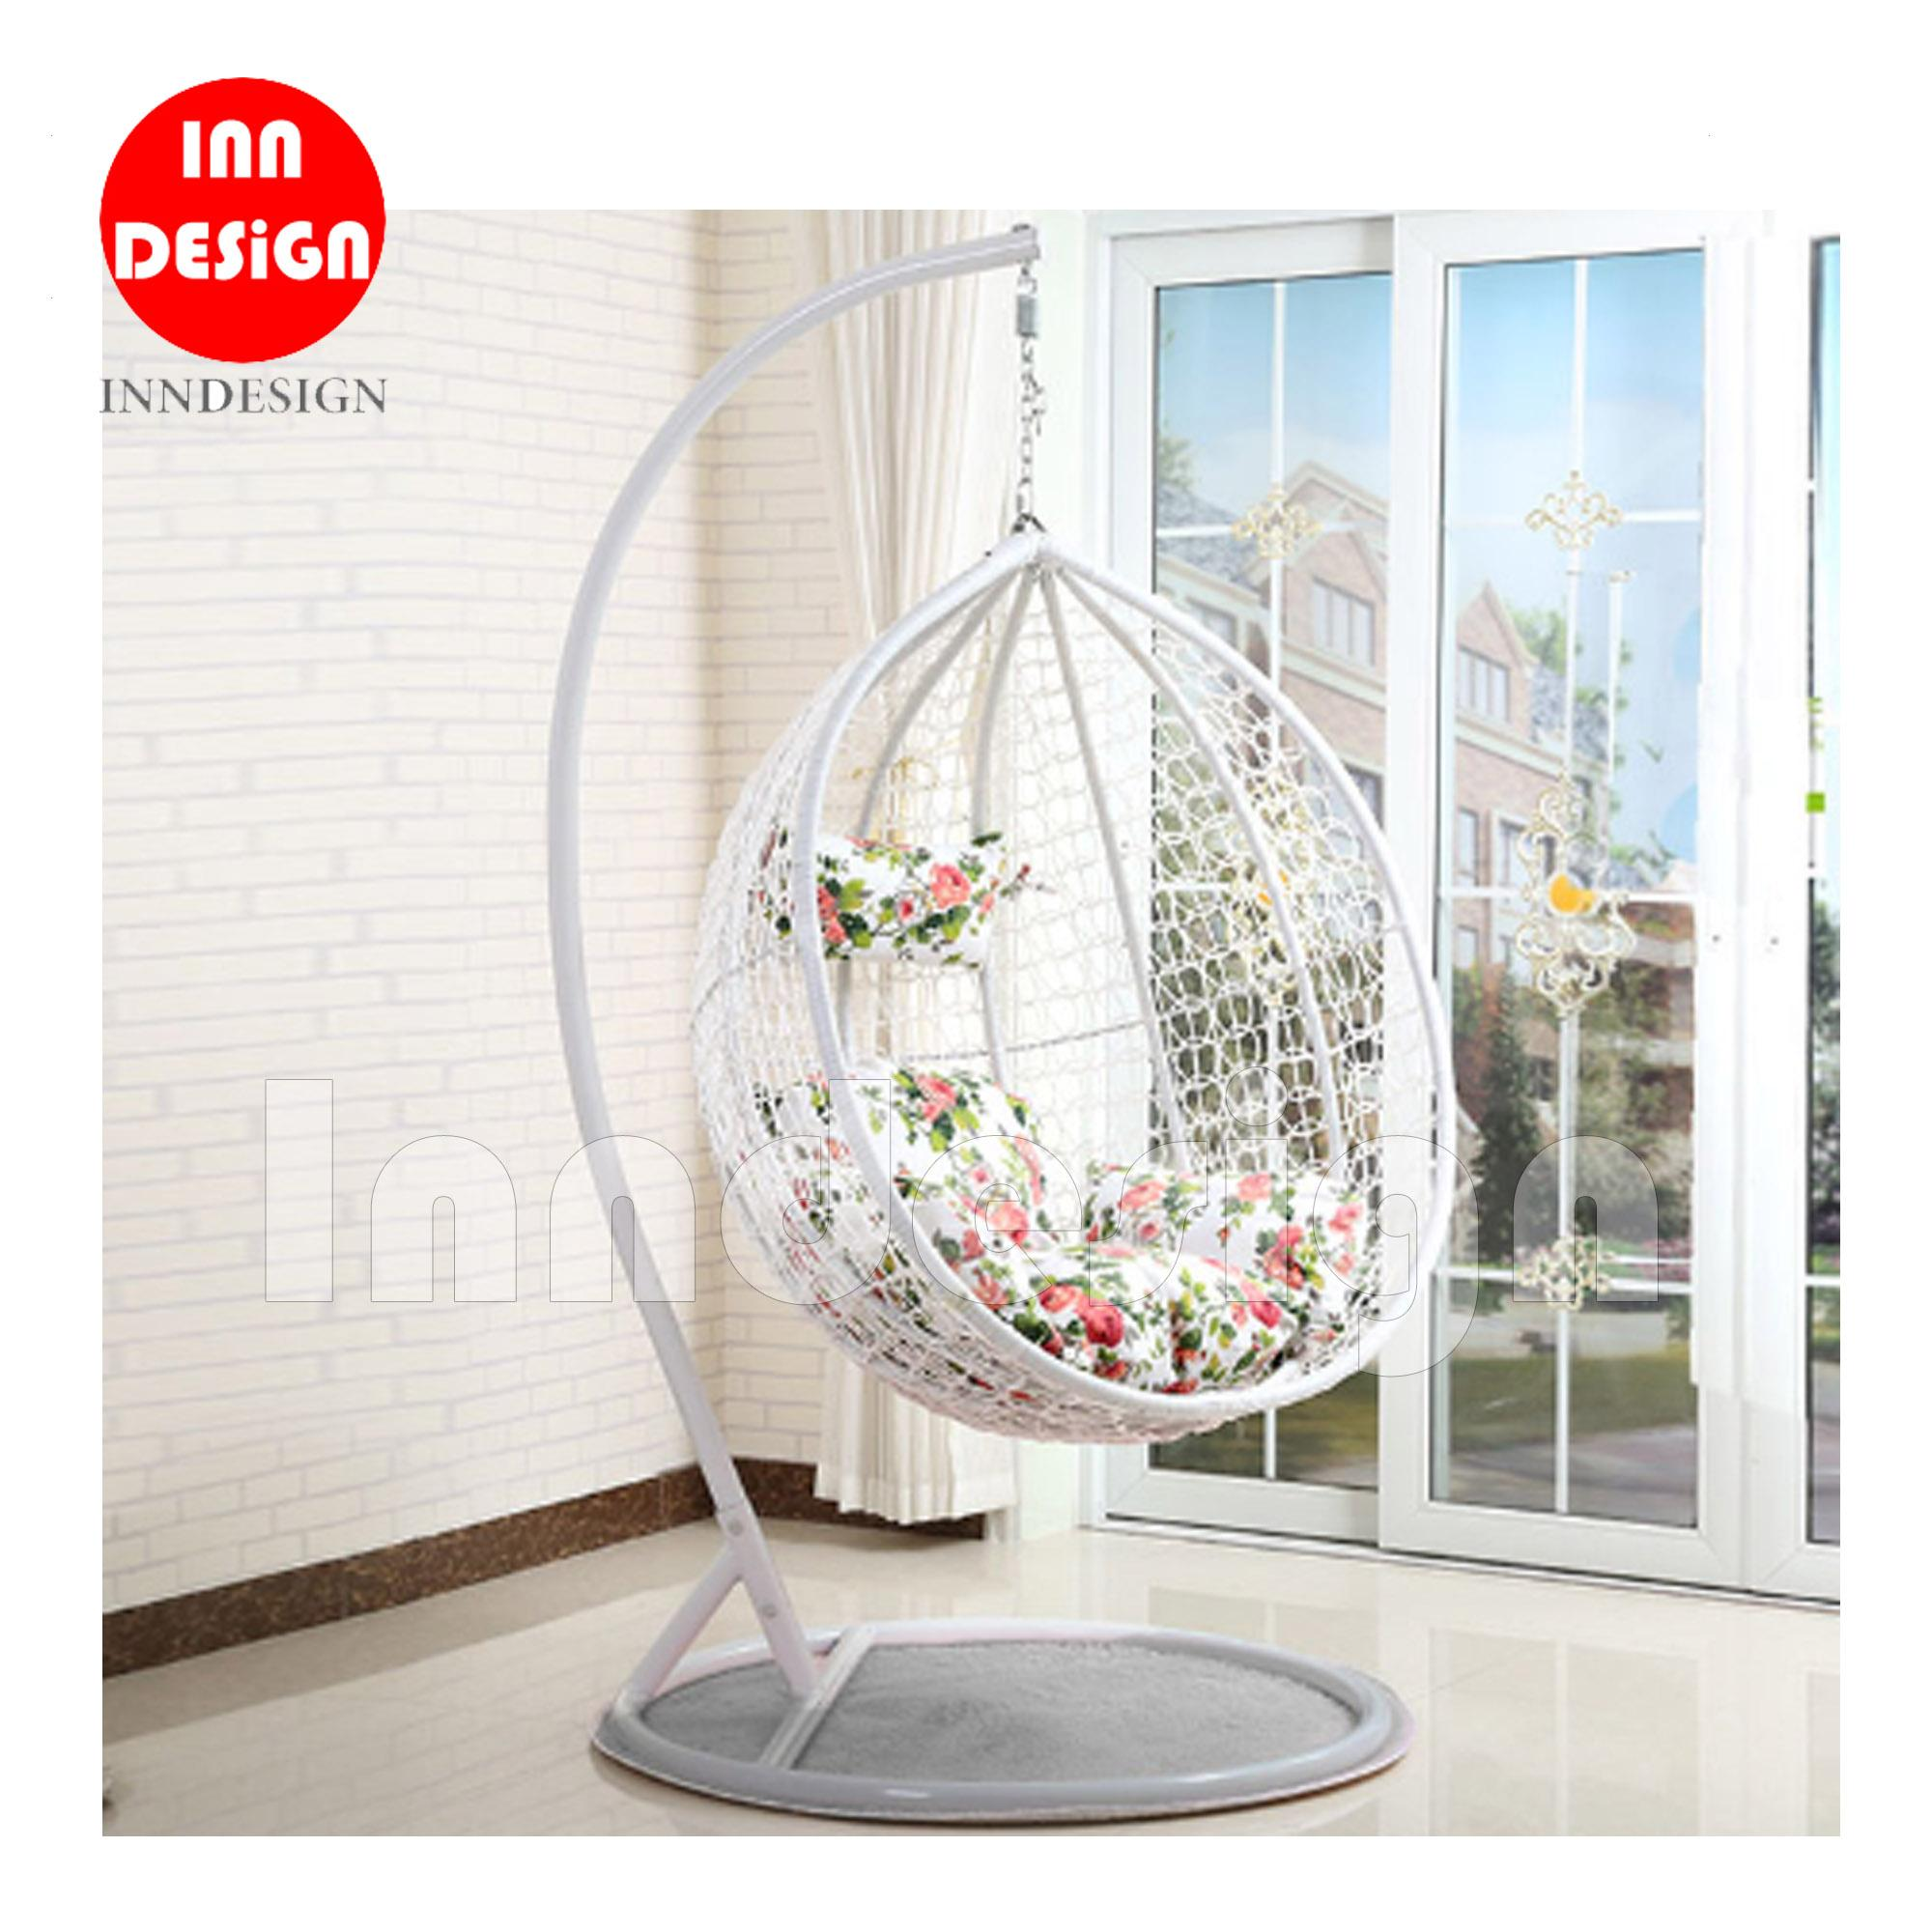 Coco Swing Chair / Lounge Chair / Relax Chair (White + Flower)